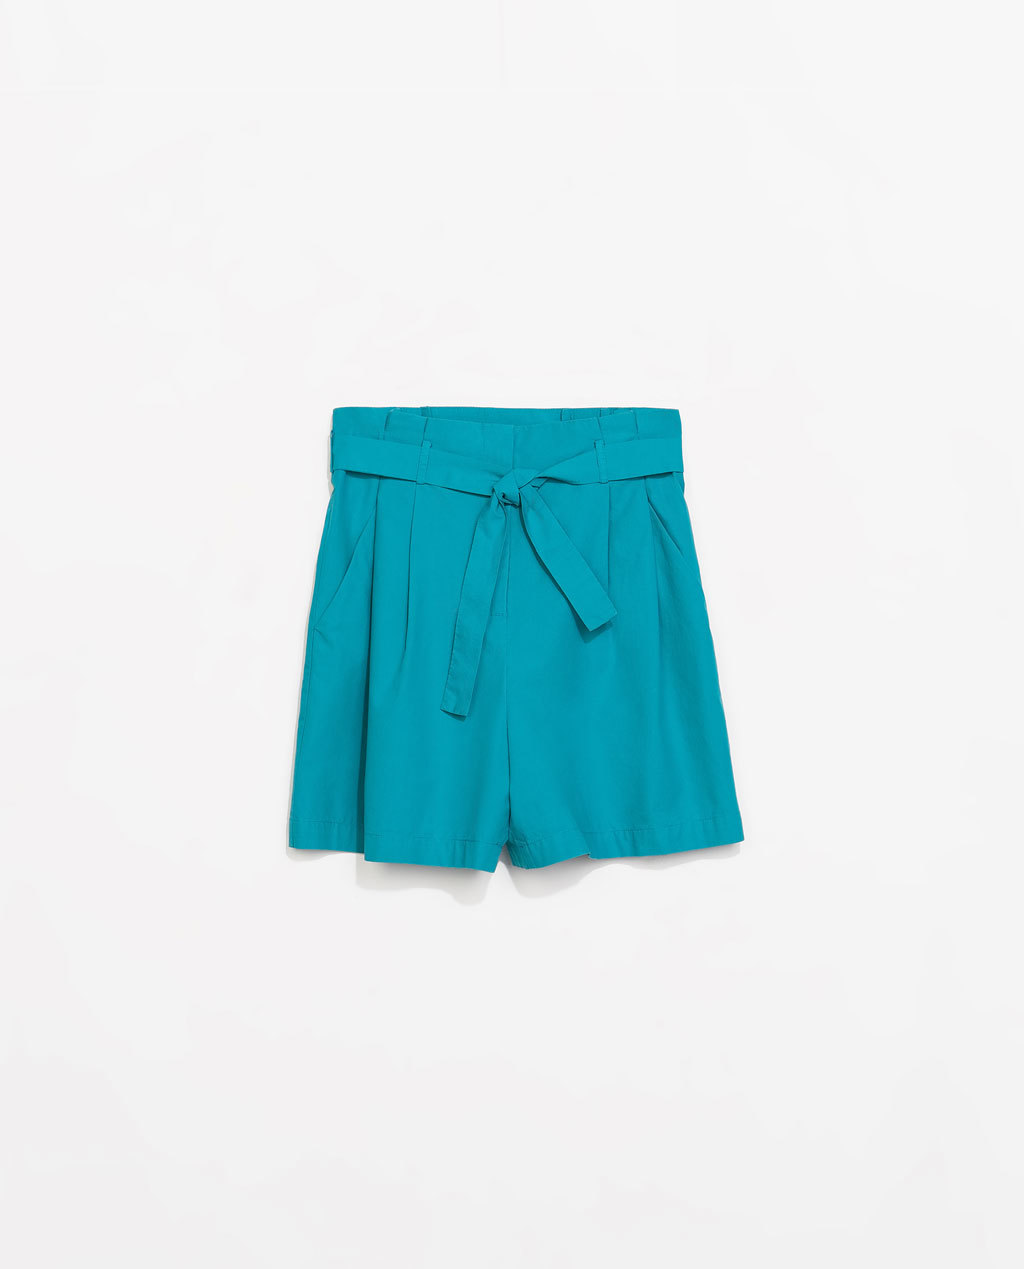 Pleated Shorts - pattern: plain; waist: high rise; waist detail: belted waist/tie at waist/drawstring; predominant colour: turquoise; occasions: casual, holiday; fibres: cotton - 100%; hip detail: front pleats at hip level; texture group: cotton feel fabrics; pattern type: fabric; season: s/s 2014; style: shorts; length: mid thigh shorts